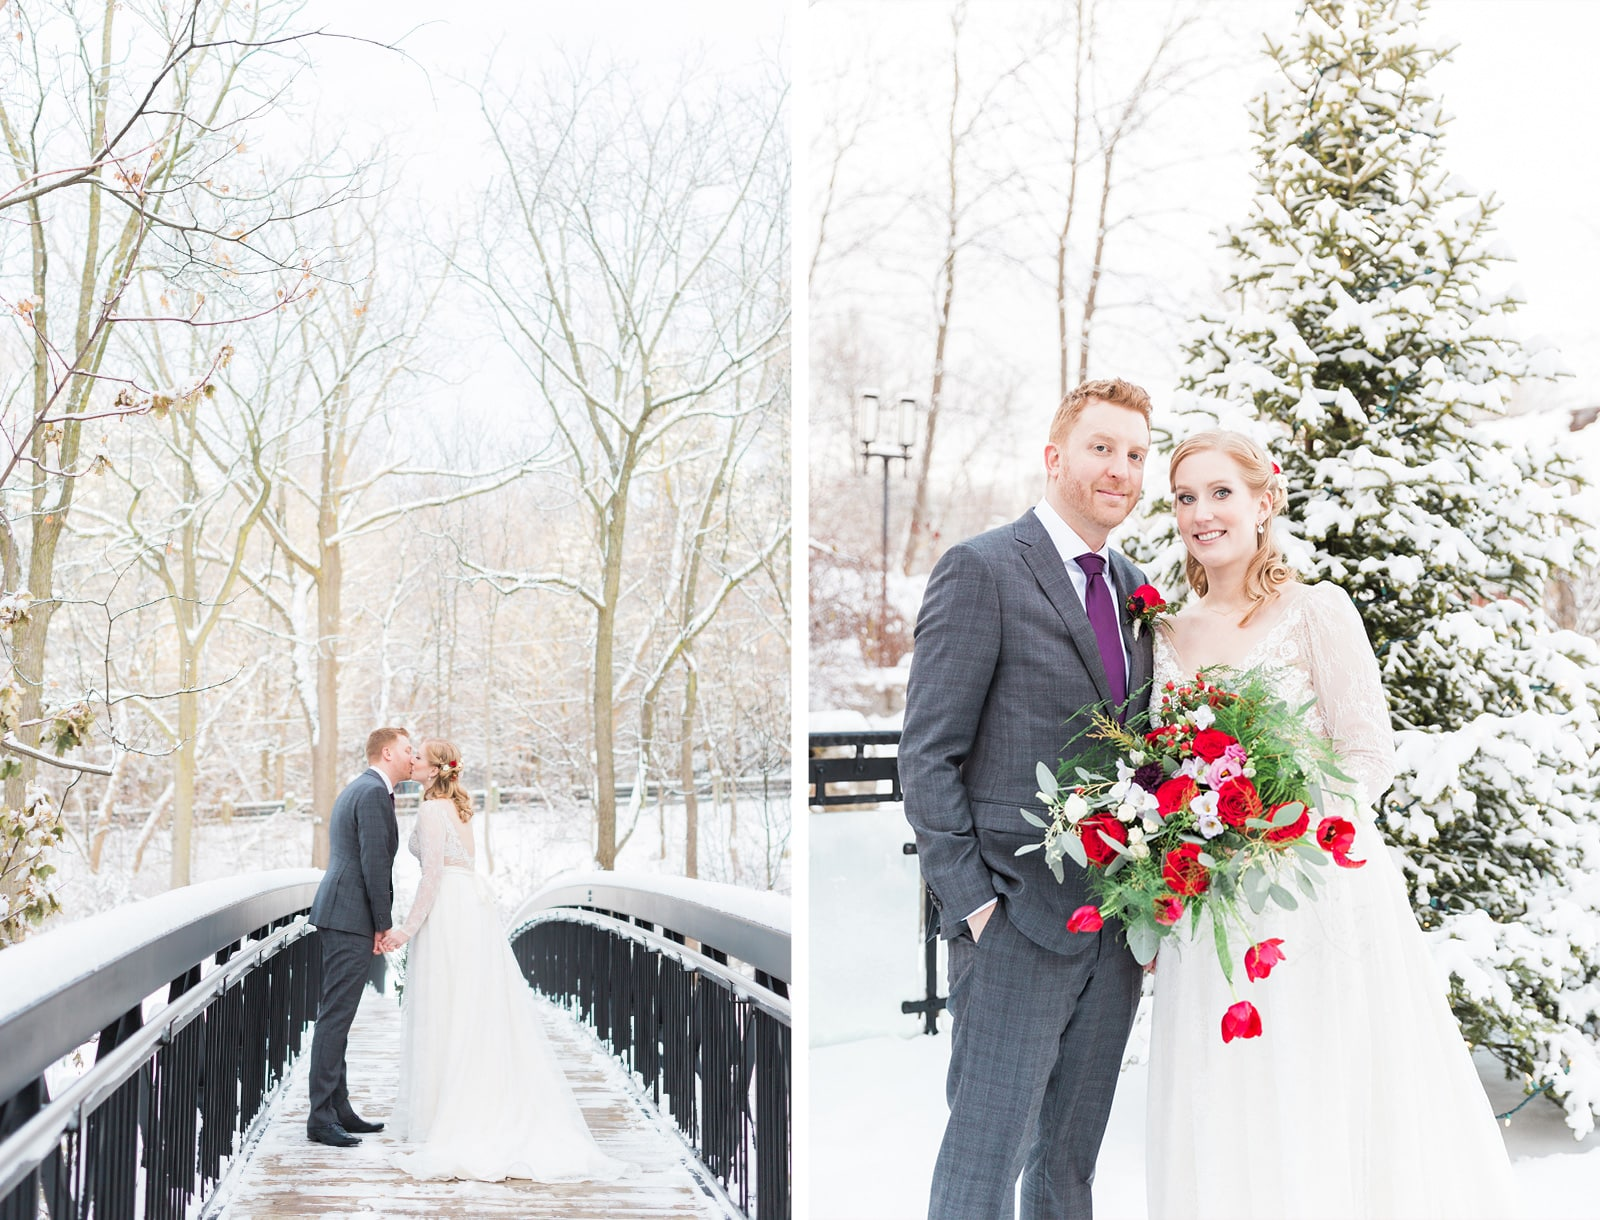 Ancaster Mill Winter Wedding Photos | Intimate White Snow